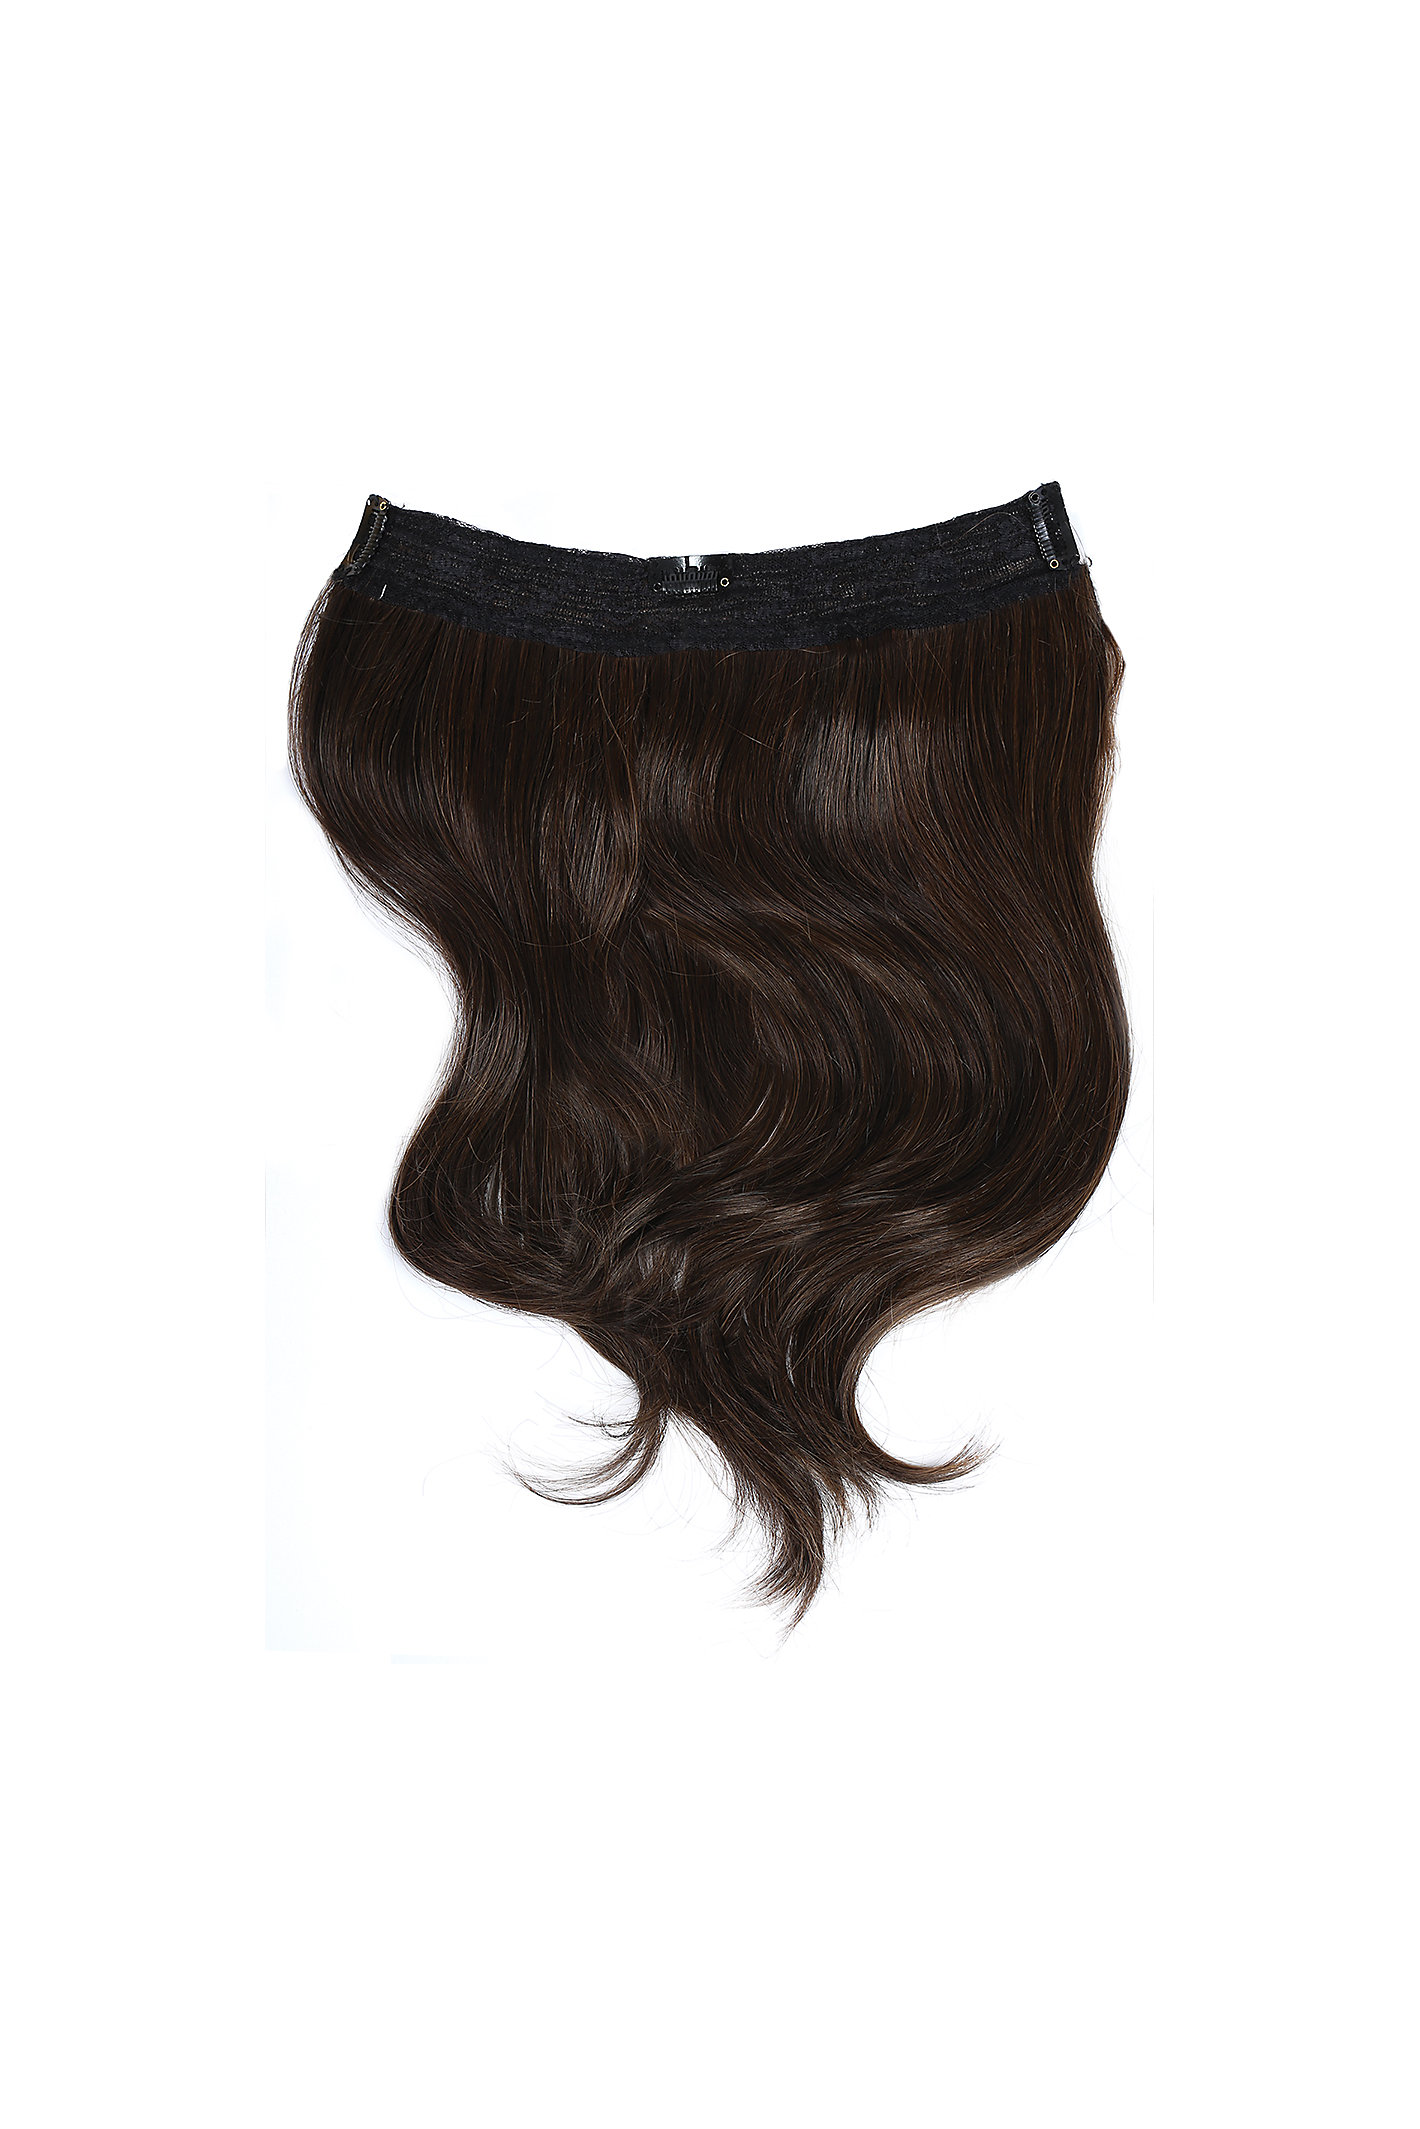 12 Inch Hair Extension